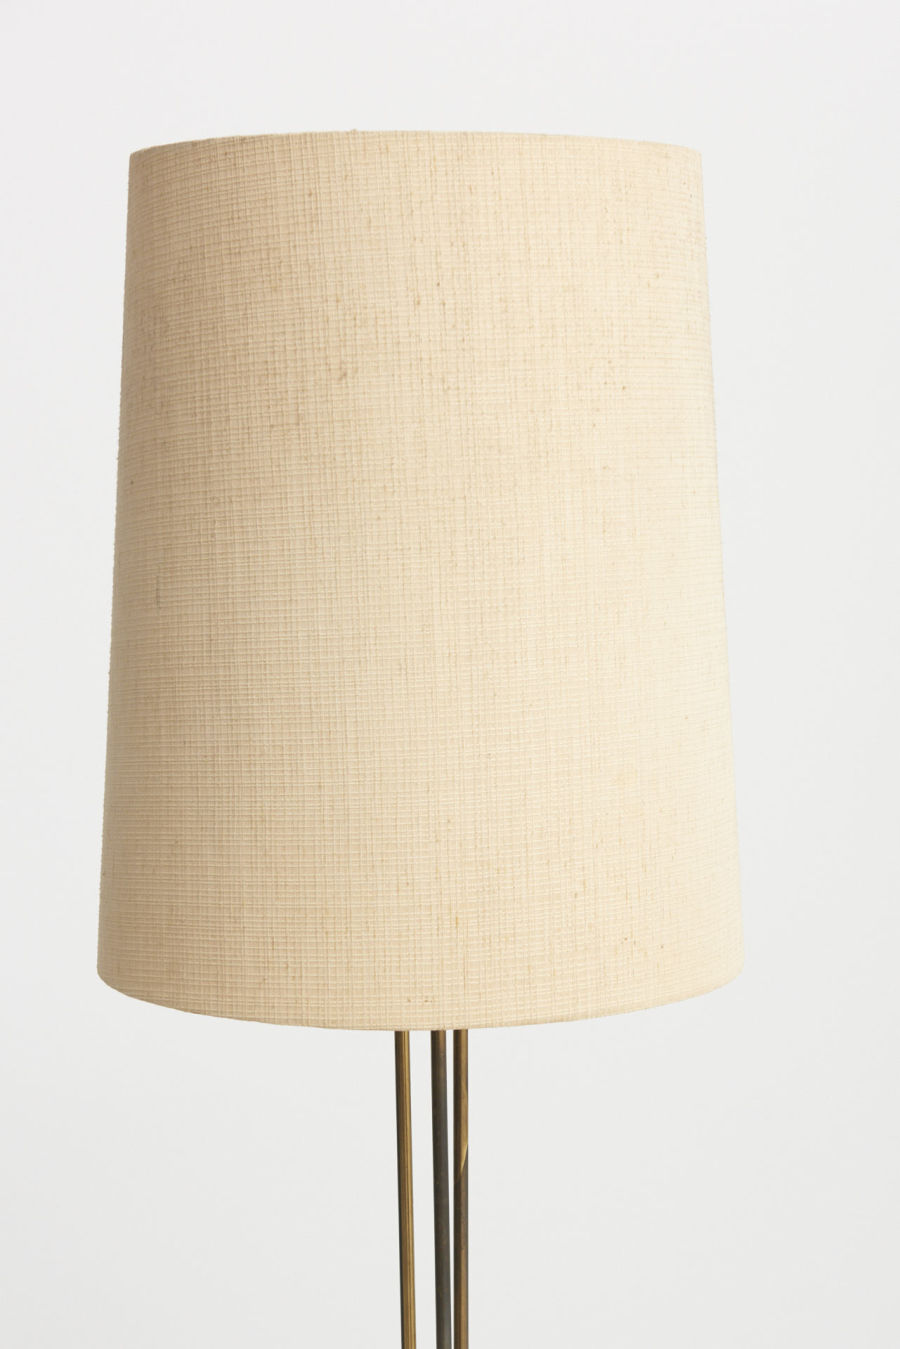 modestfurniture-vintage-2004-floor-lamp-brass-1950s07